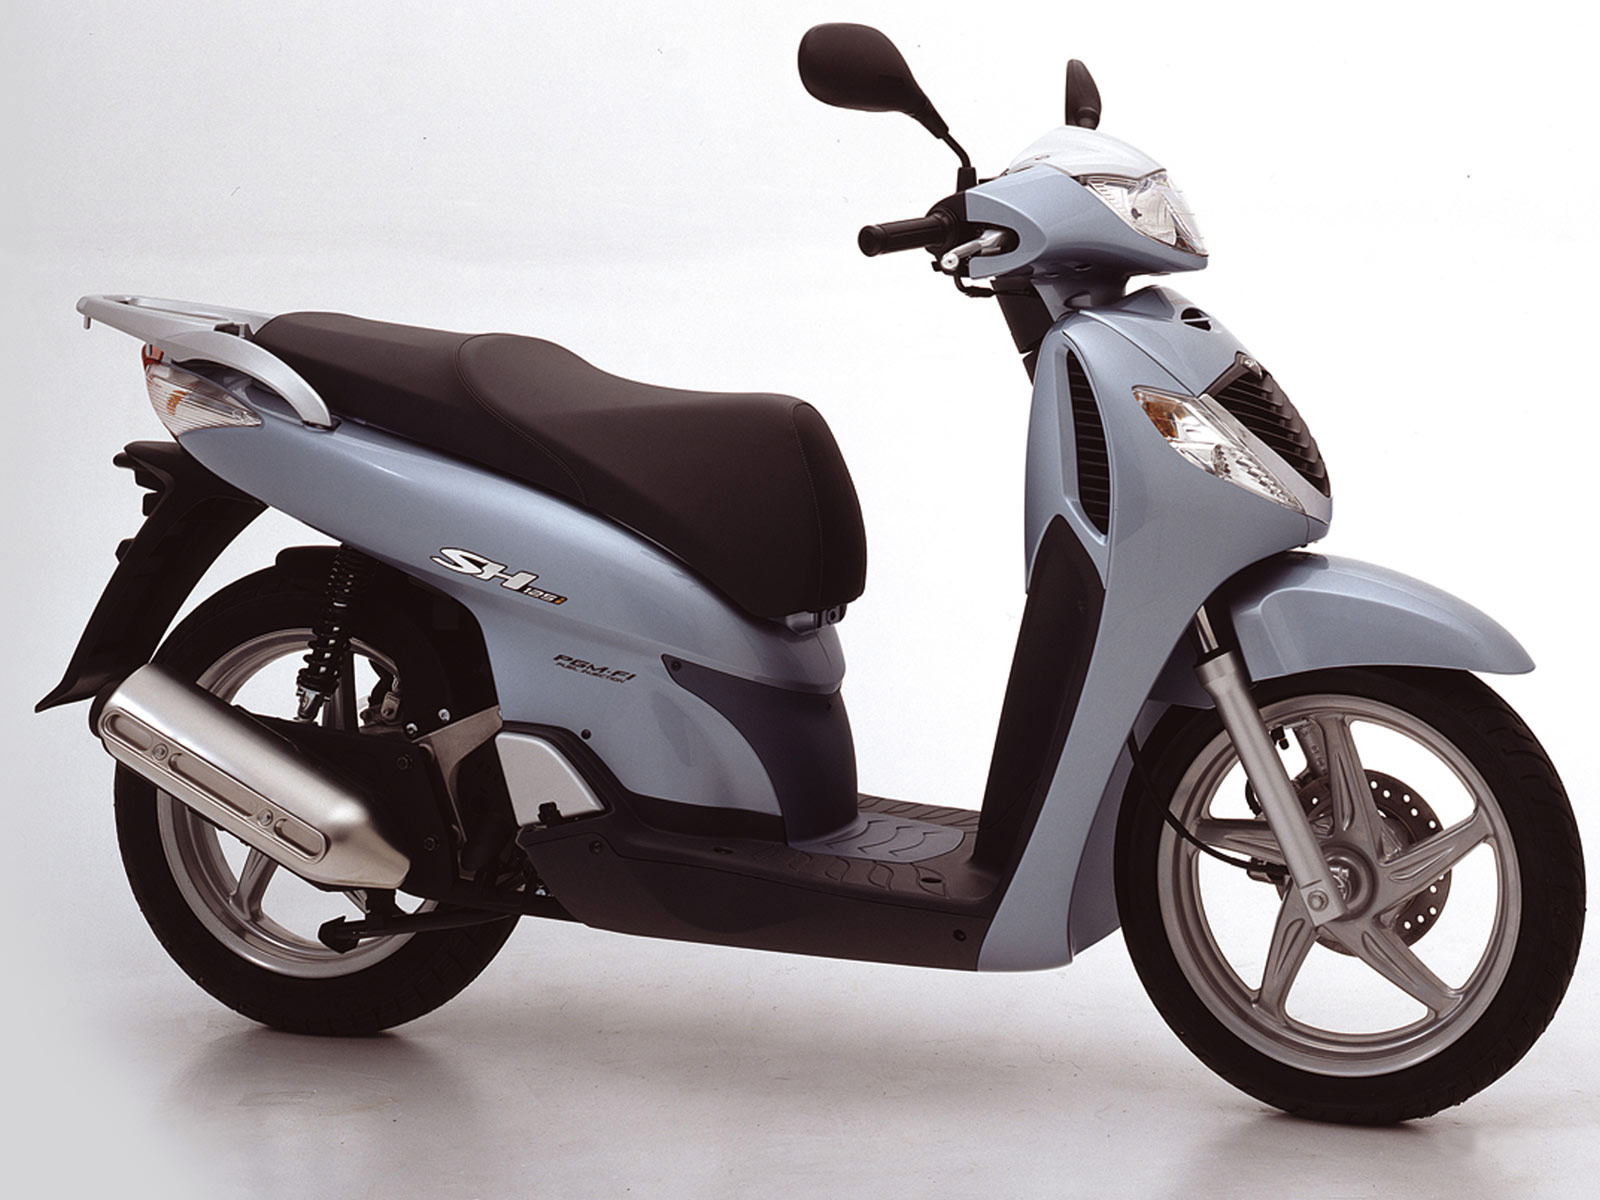 2005 HONDA SH150i accident lawyers, Scooter Pictures